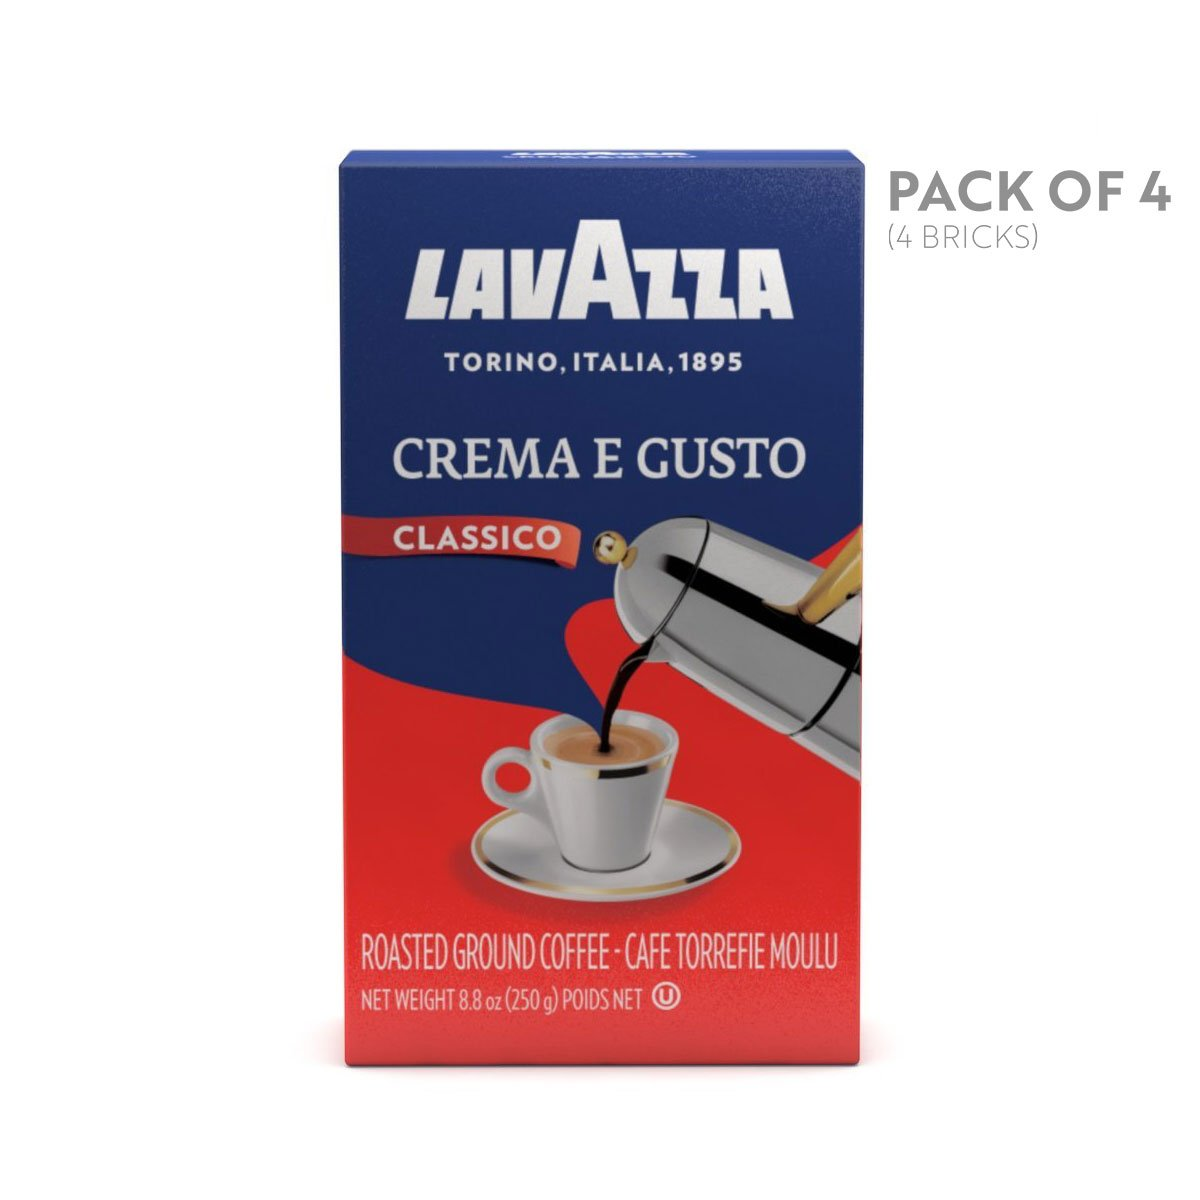 Lavazza Crema e Gusto Ground Coffee Blend, Espresso Dark Roast, 8.8-Ounce Brick (Pack of 4)